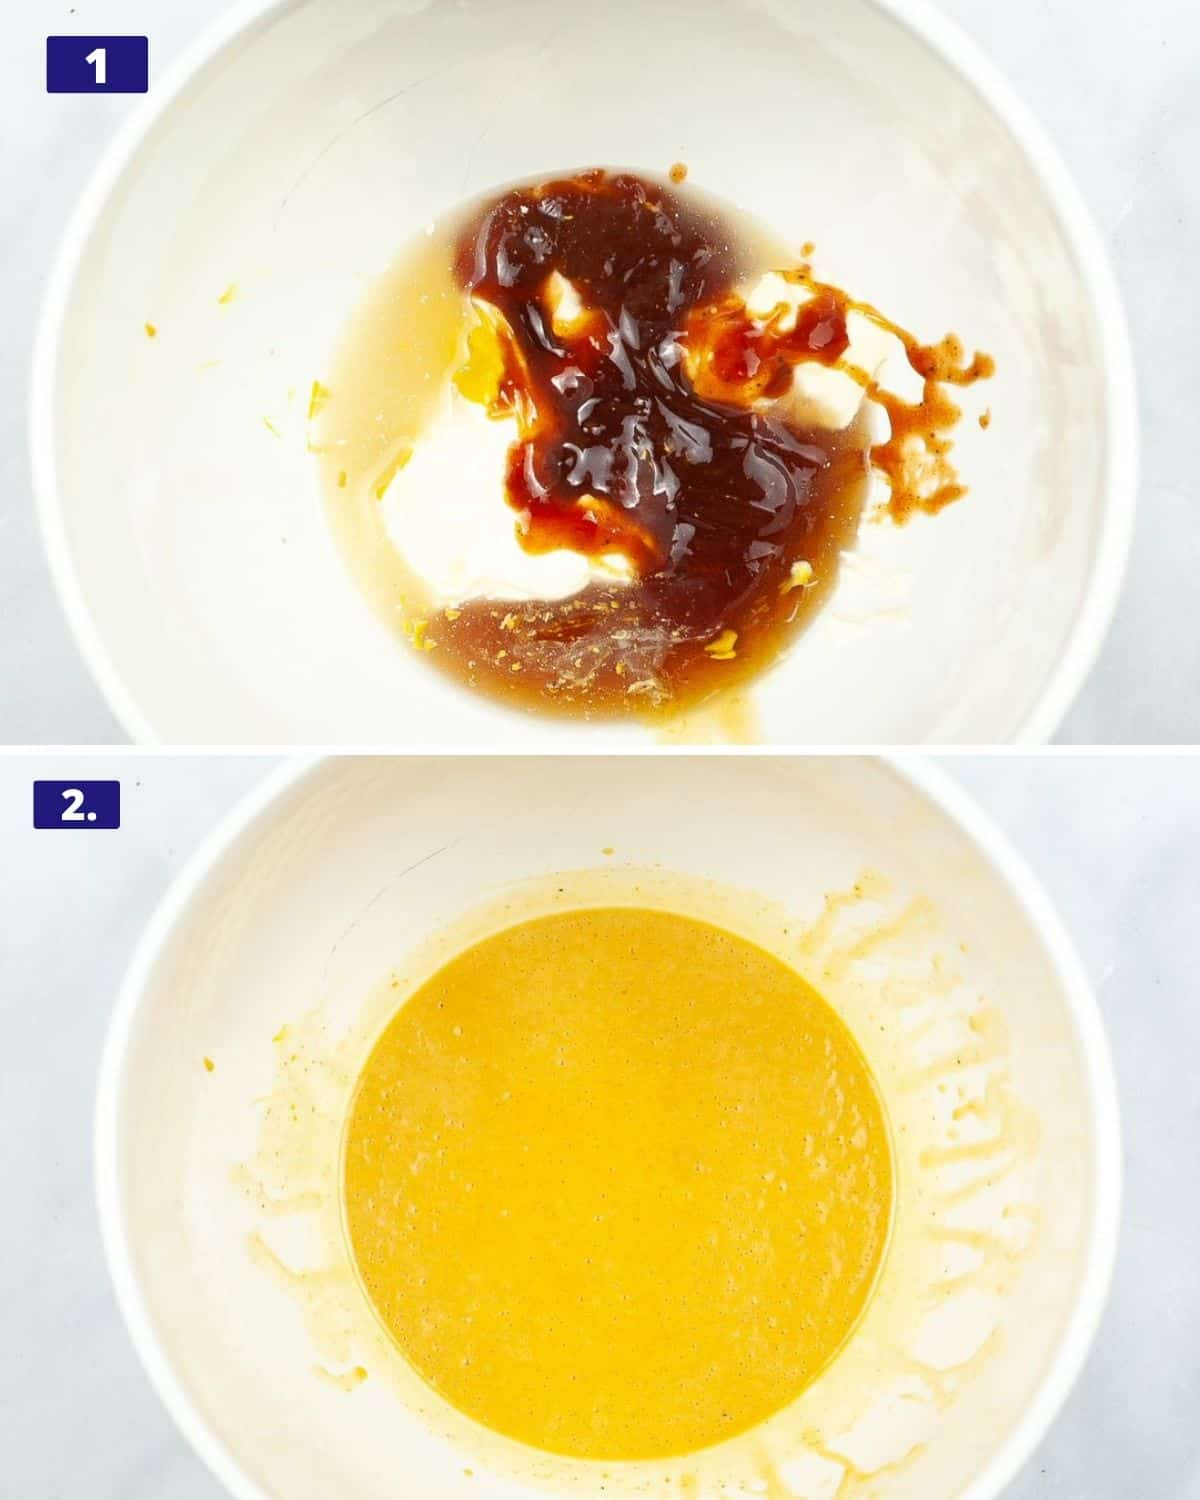 2 photos, 1 the ingredients mayo, mustard, bbq sauce, and lemon juice in a white bowl. 2nd photo, those ingredients mixed together.